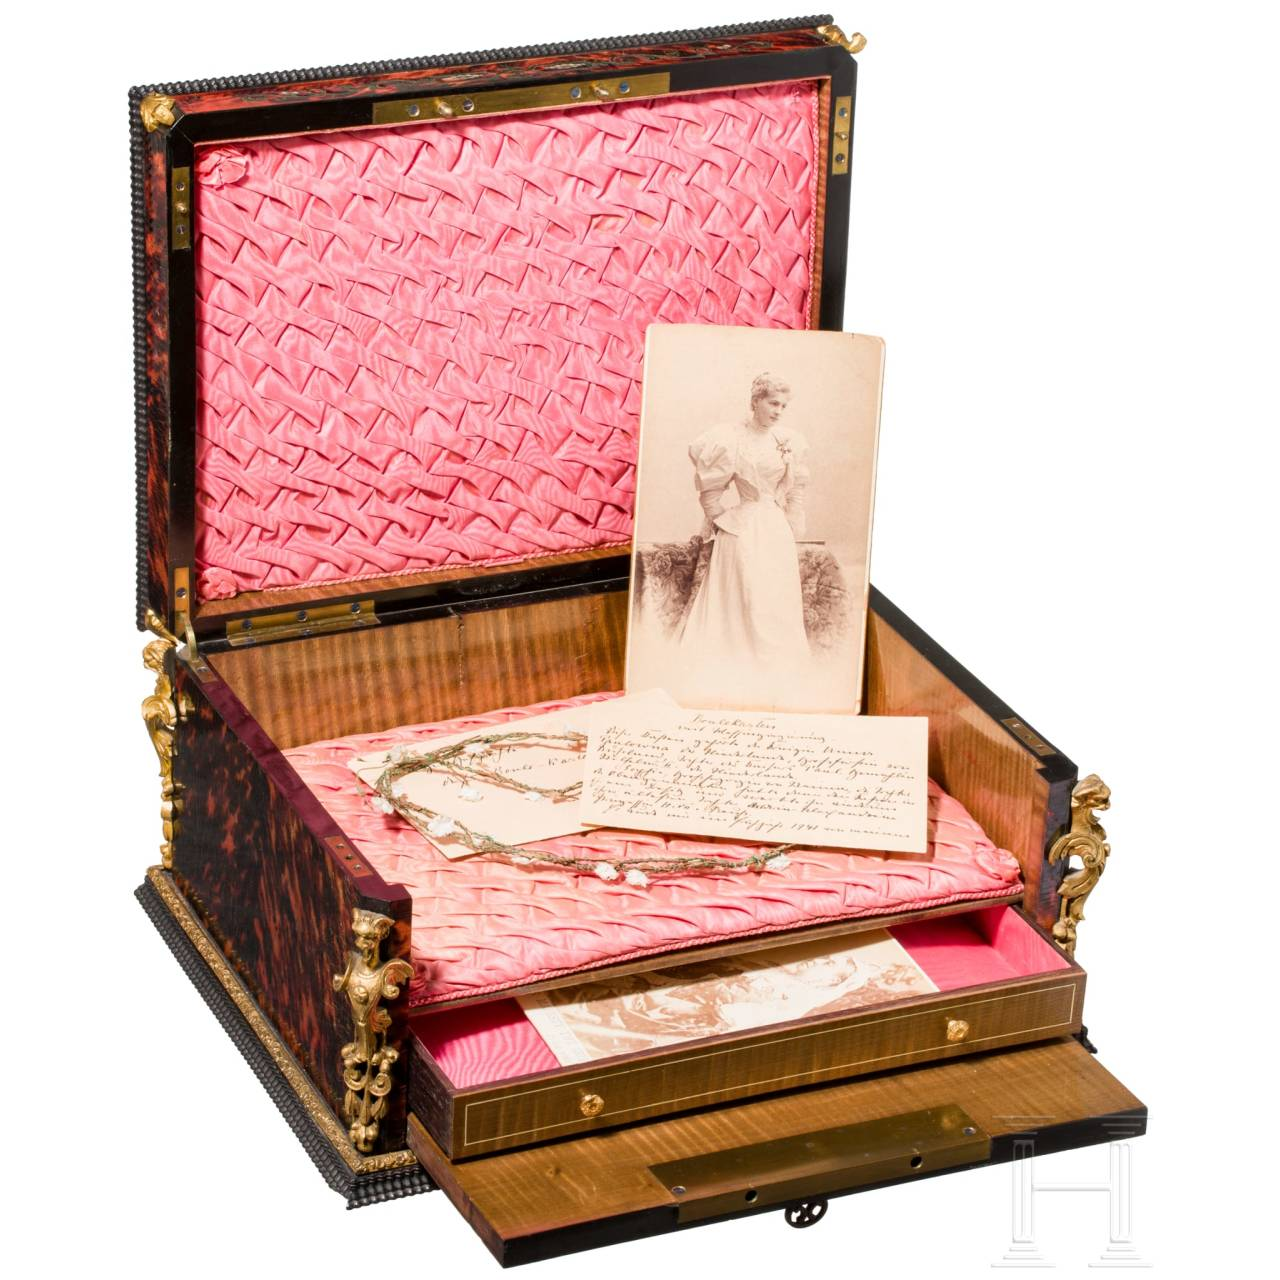 A French courtly stationery box from the possession of a Russian princely family, mid-19th century